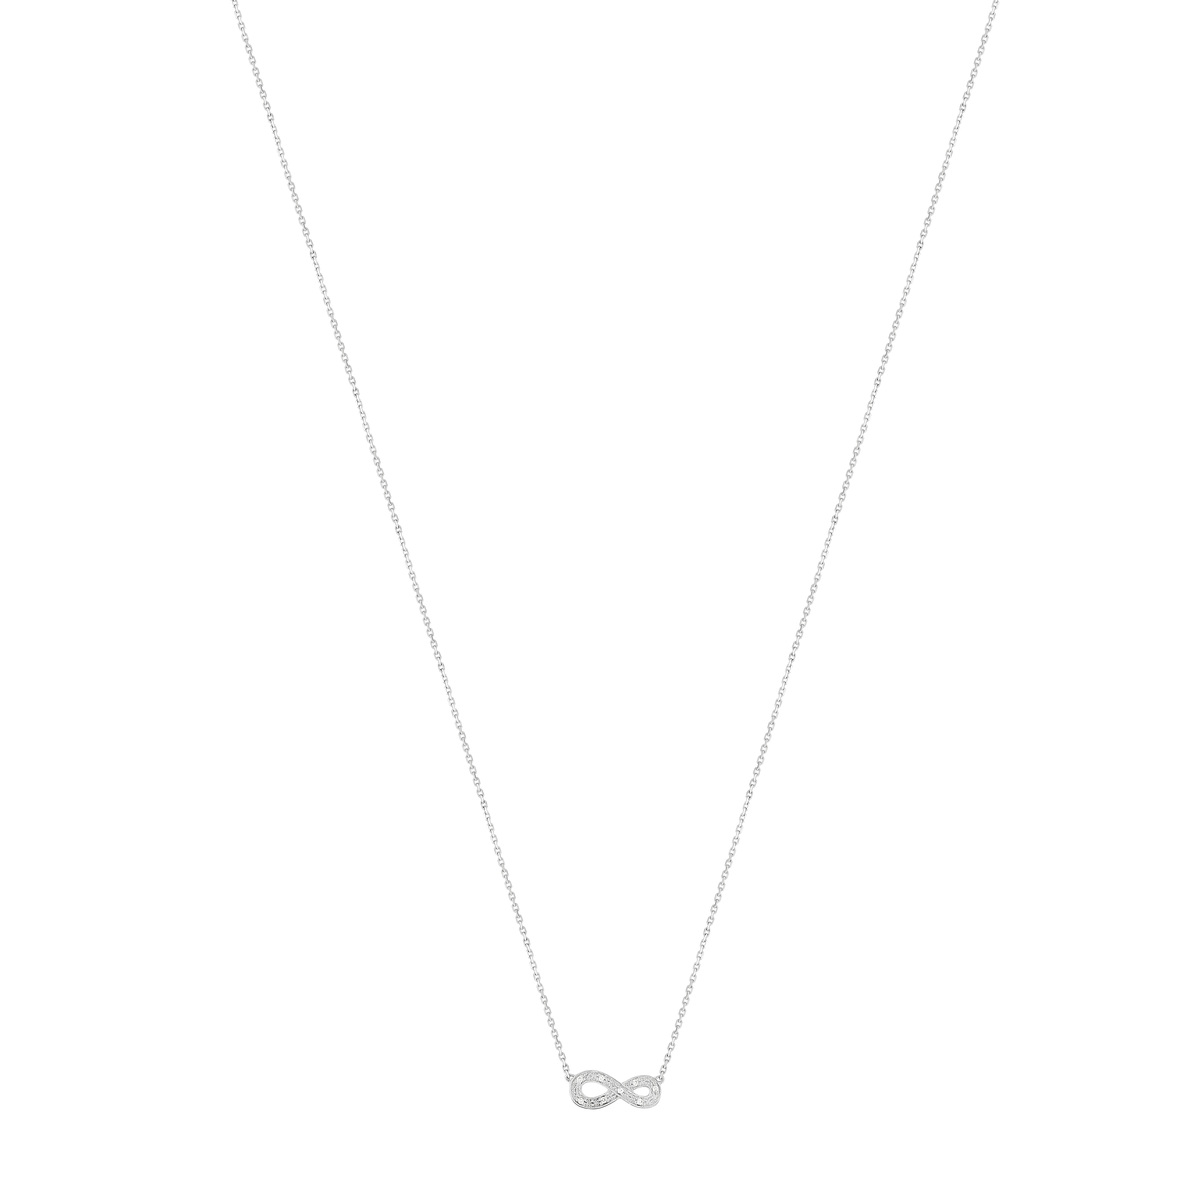 Collier or blanc 375 diamants 42 cm - vue V1